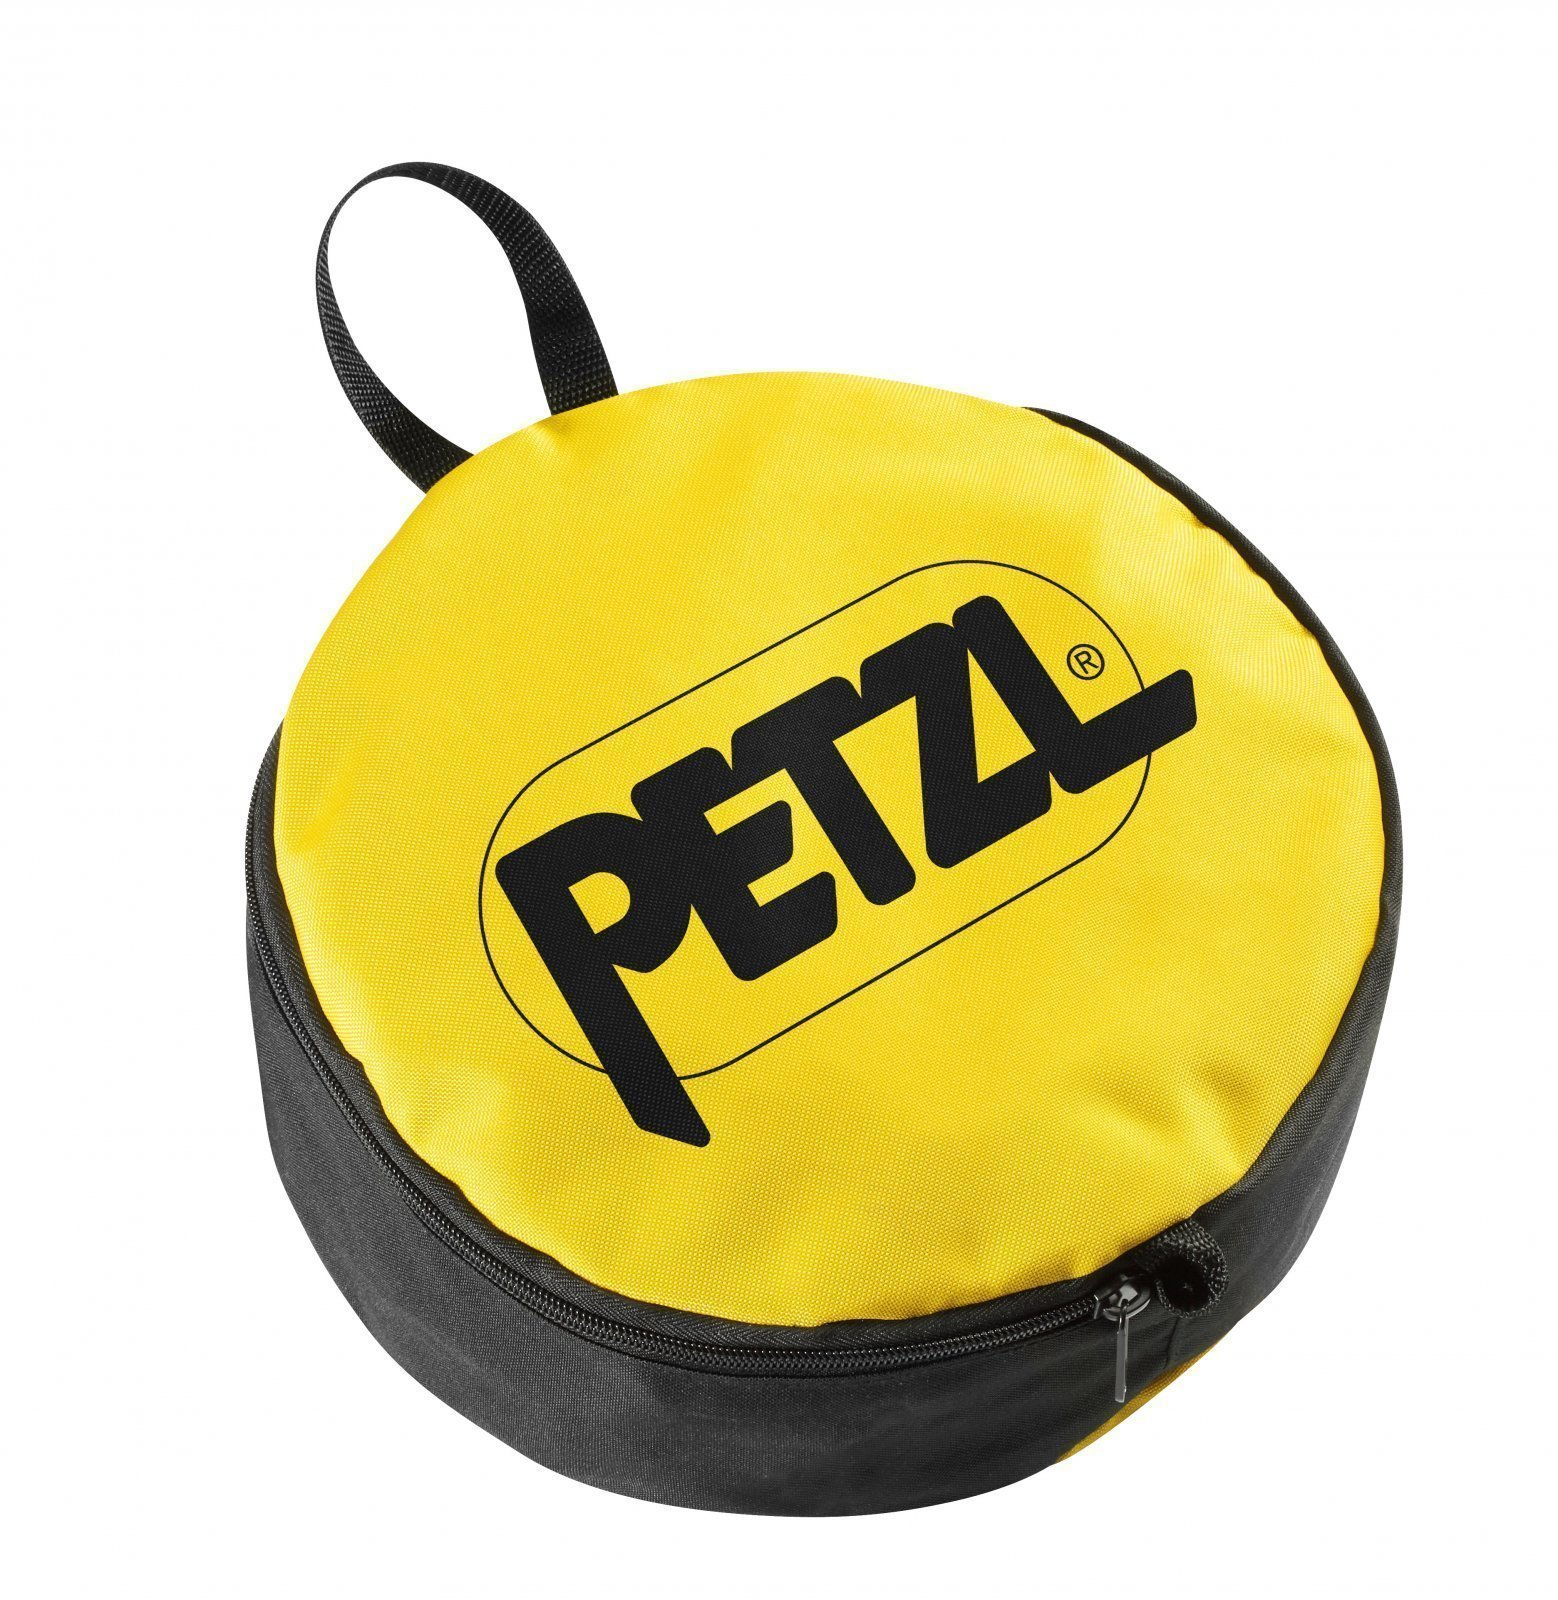 Petzl ECLIPSE collapsible throw line storage